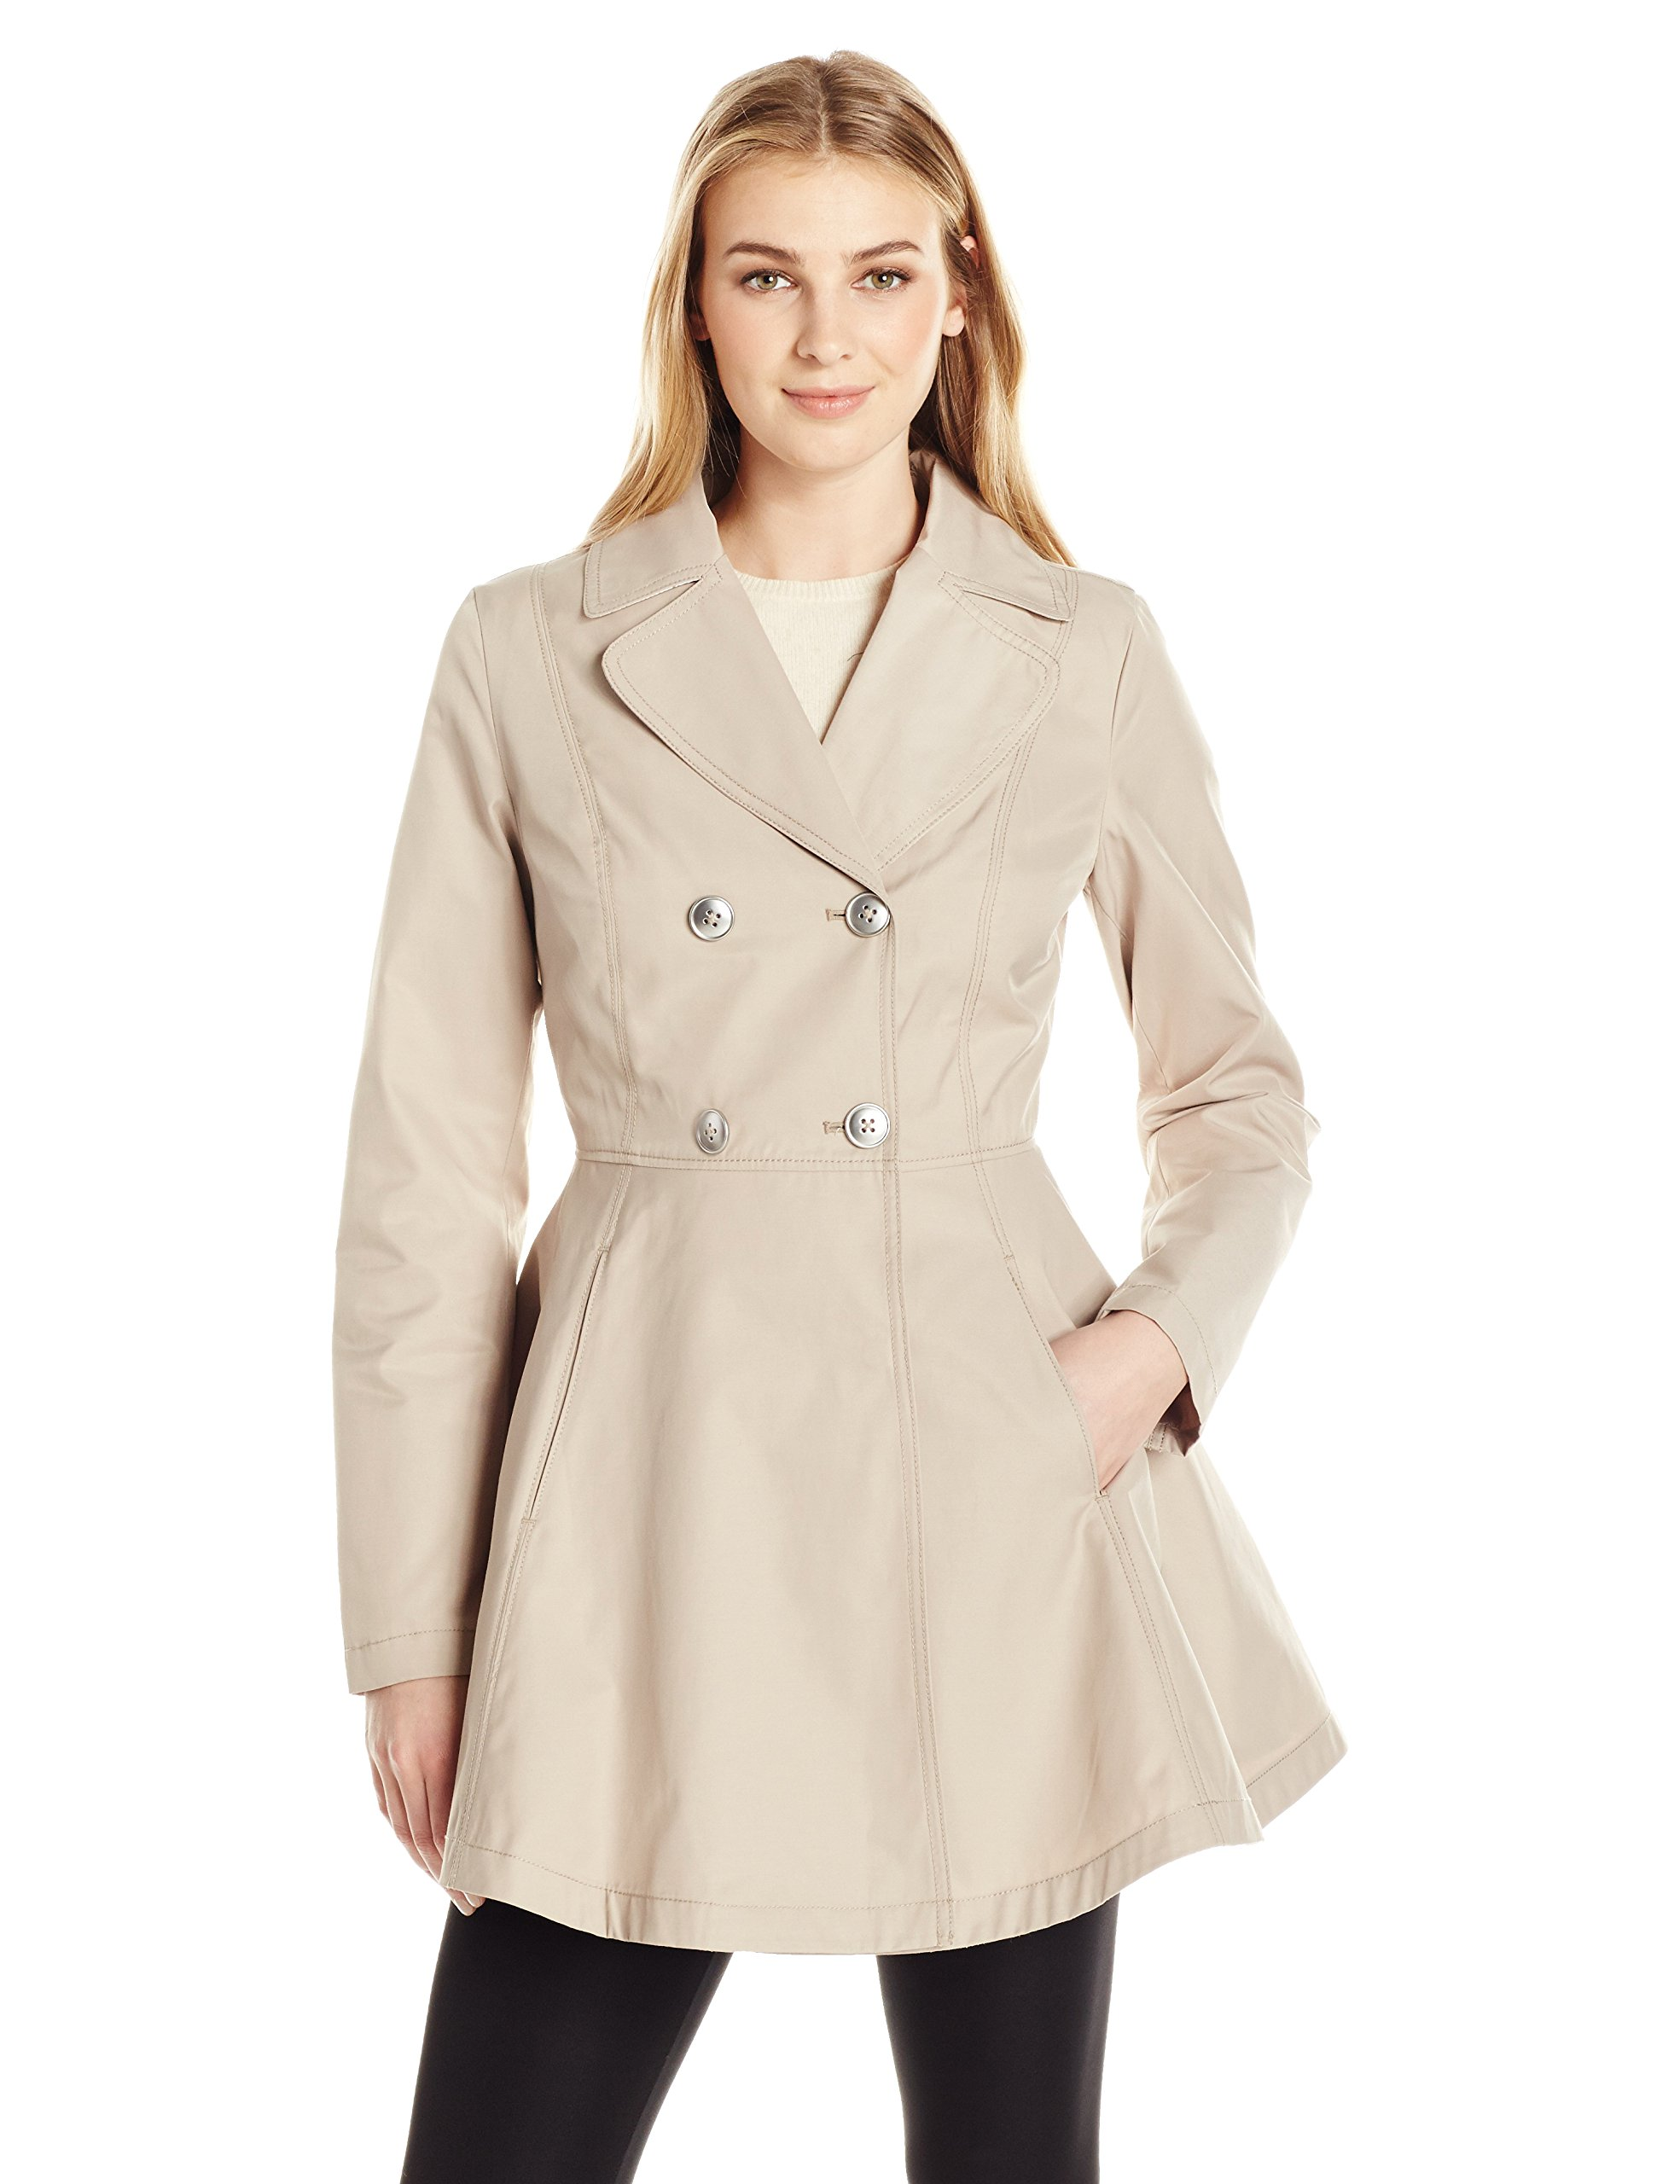 Lark & Ro Women's Fit and Flare Trench Coat, New Stone, XL